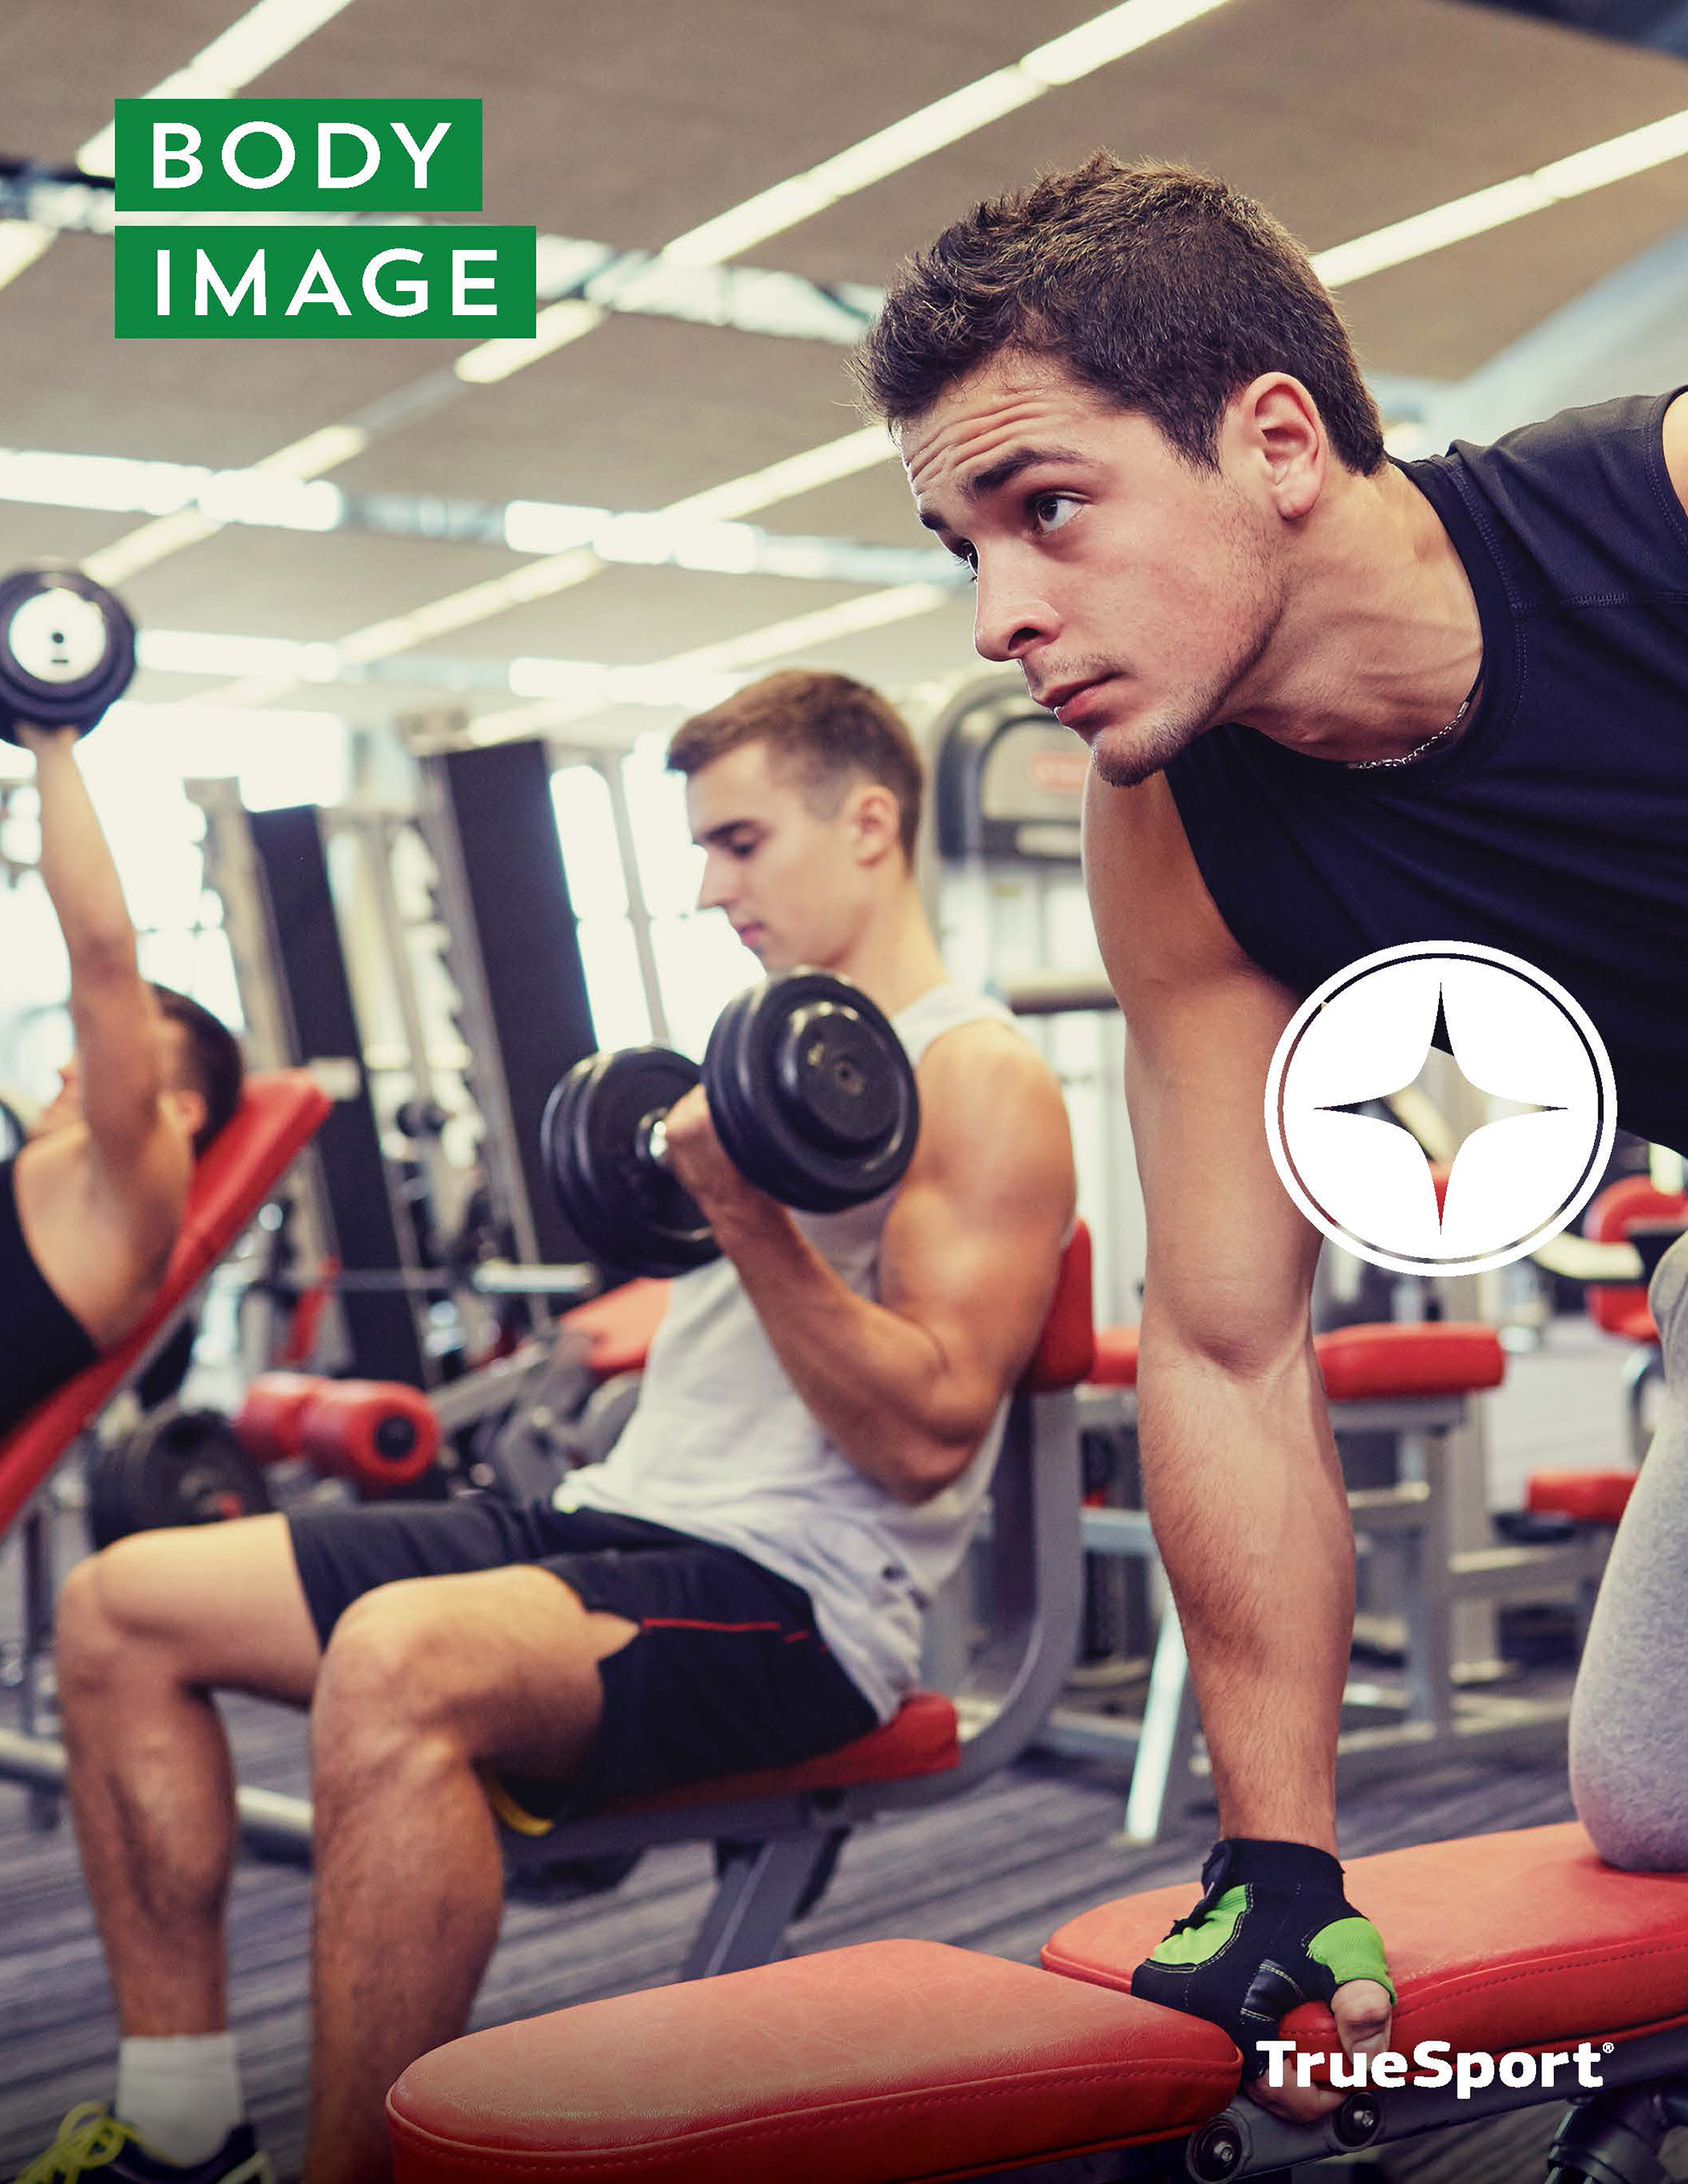 Body Image Lesson cover of two men working out in a gym.